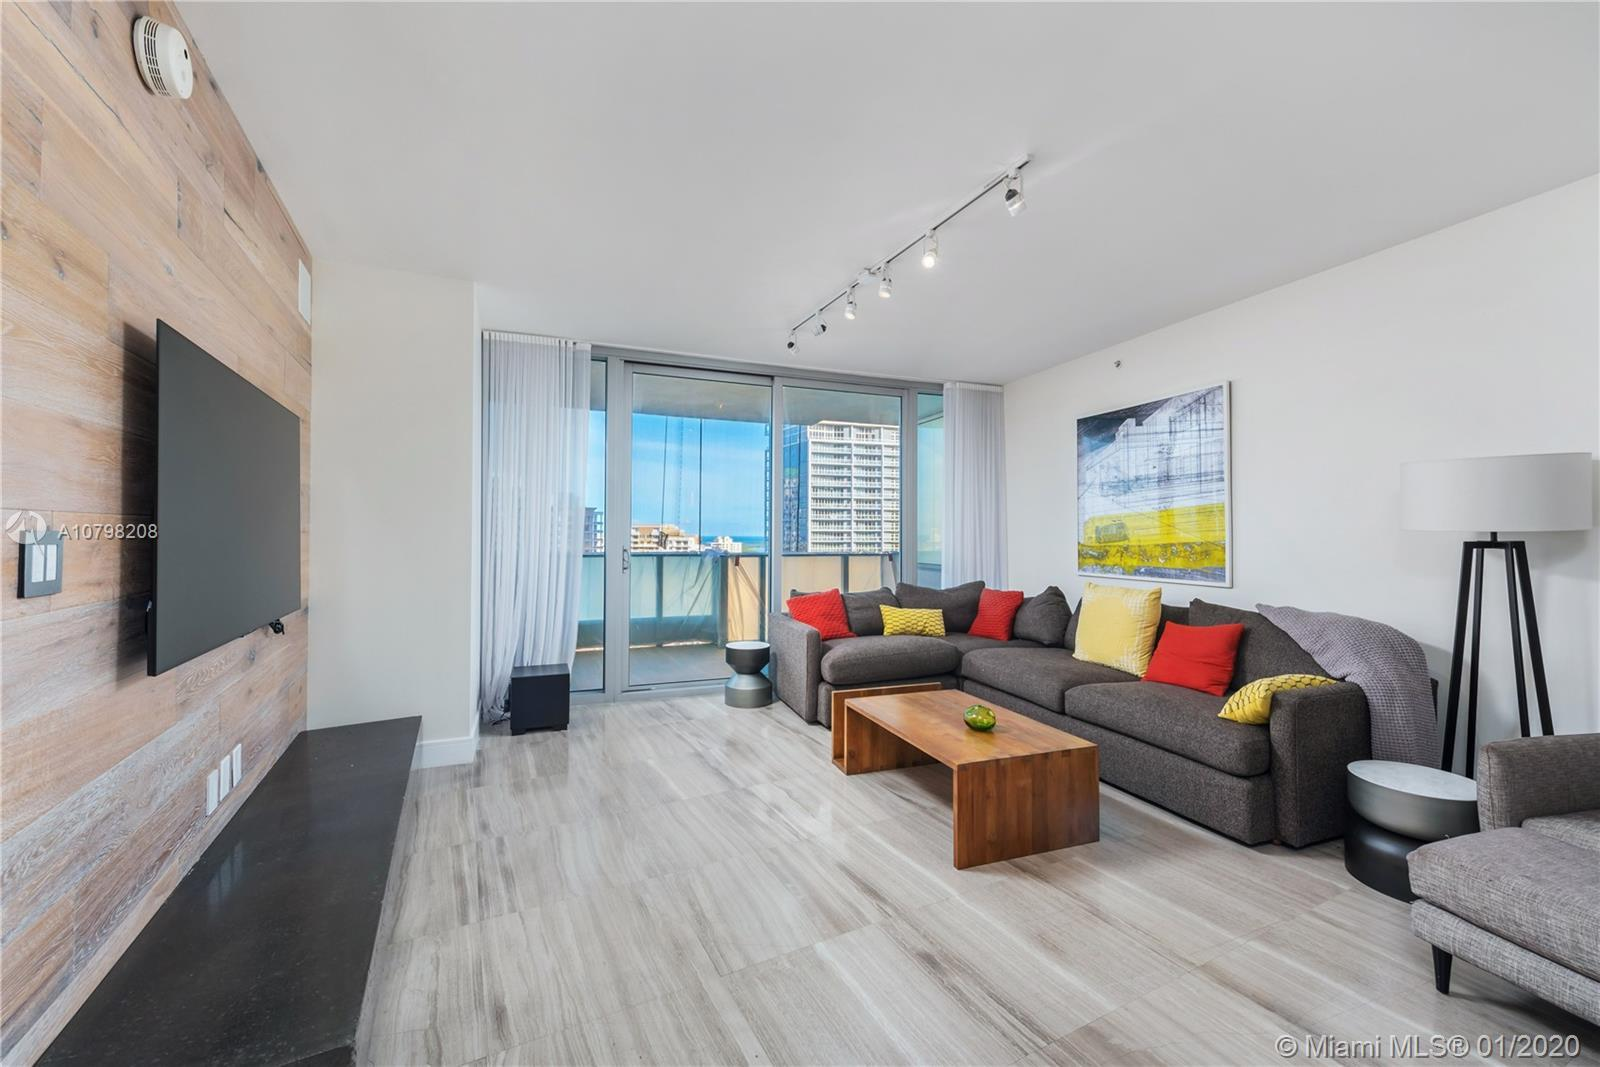 Beautifully renovated, fully furnished, upgraded and modern 1-bed 1.5 bath unit at the Epic in downt